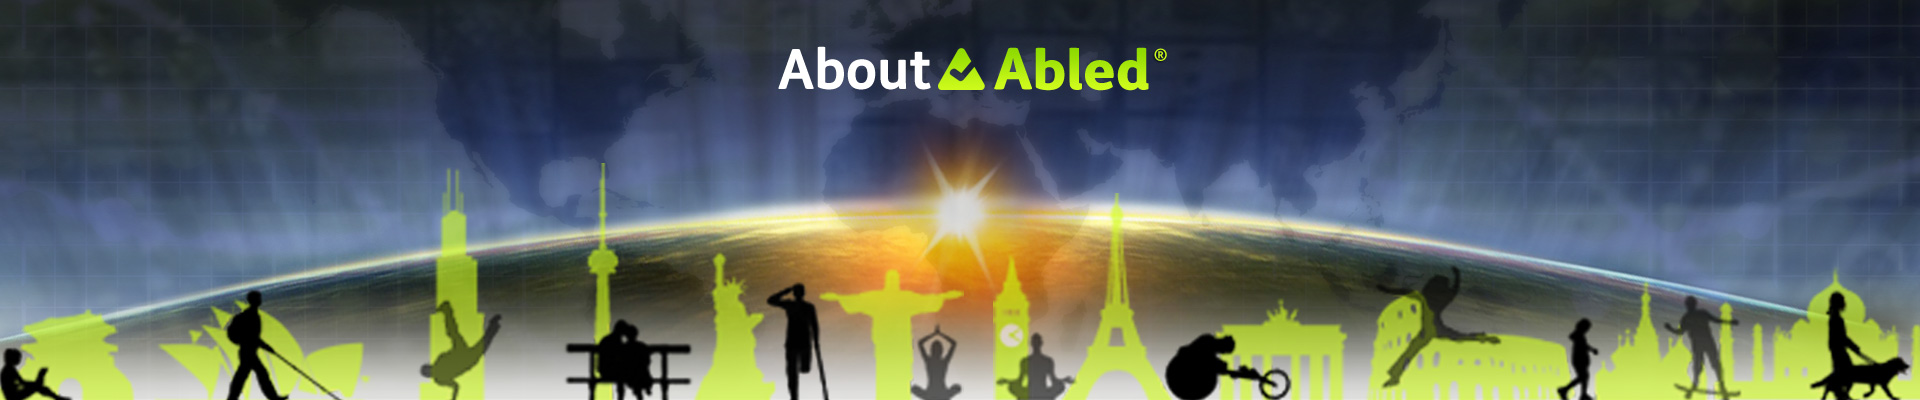 AboutAbled Banner features the silhouettes of variously abled people against a selection of world city icons in gradient green to match the Abled logo set against a sunrise over the curve of the Earth as seen from space.